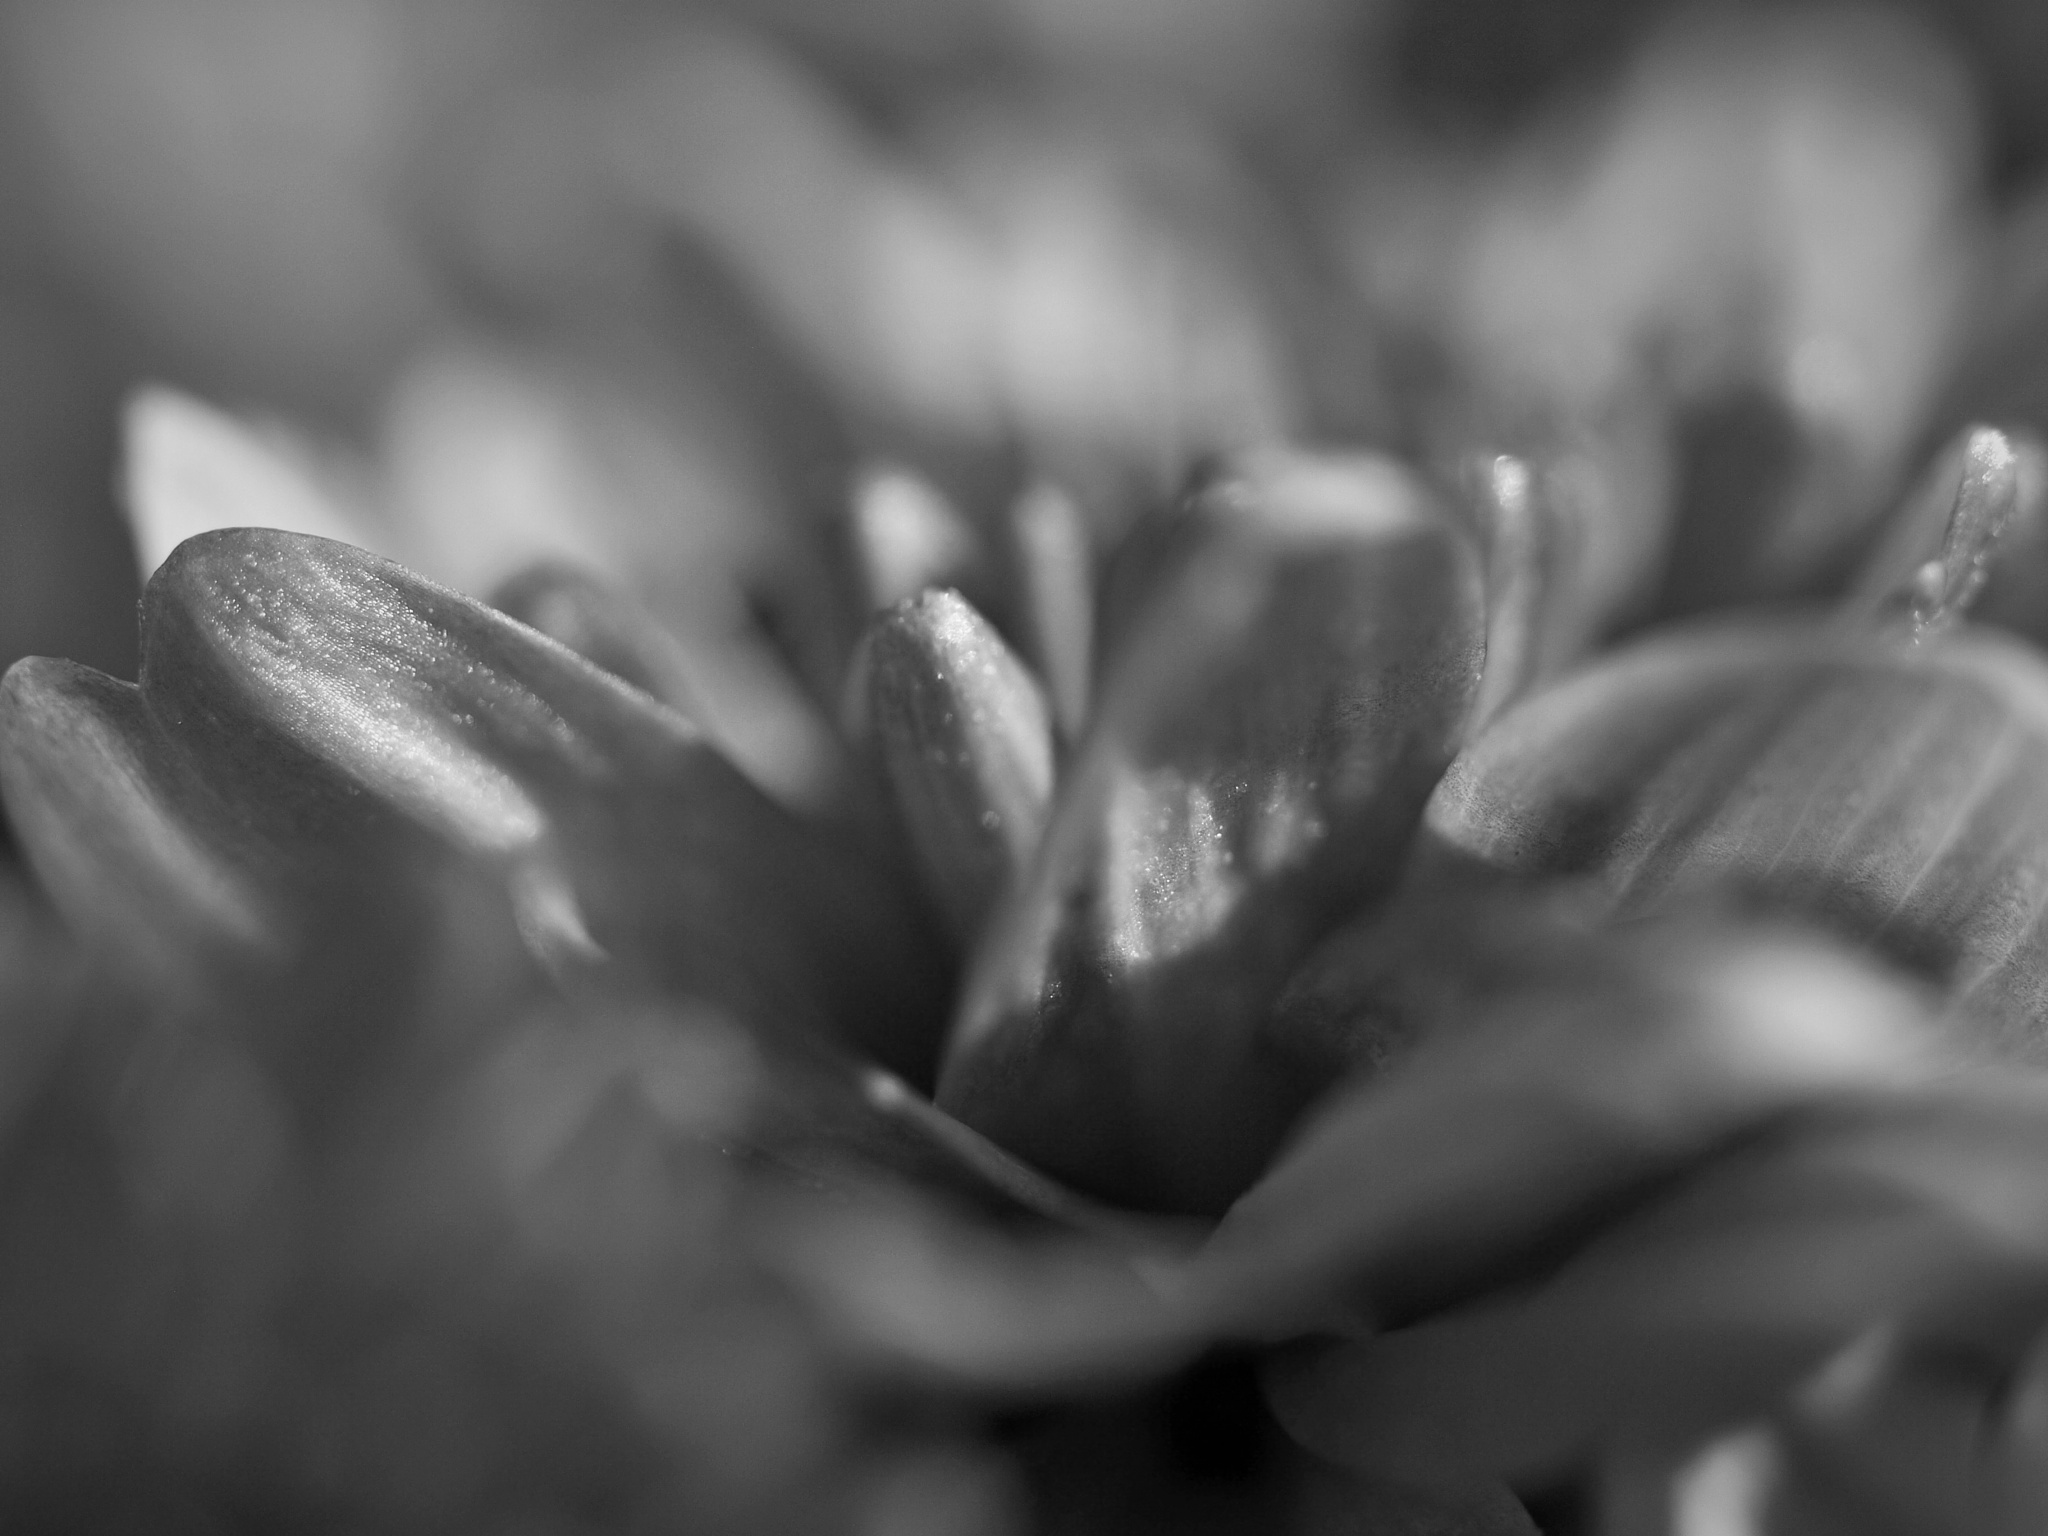 Flower Petals by photofly/Holly